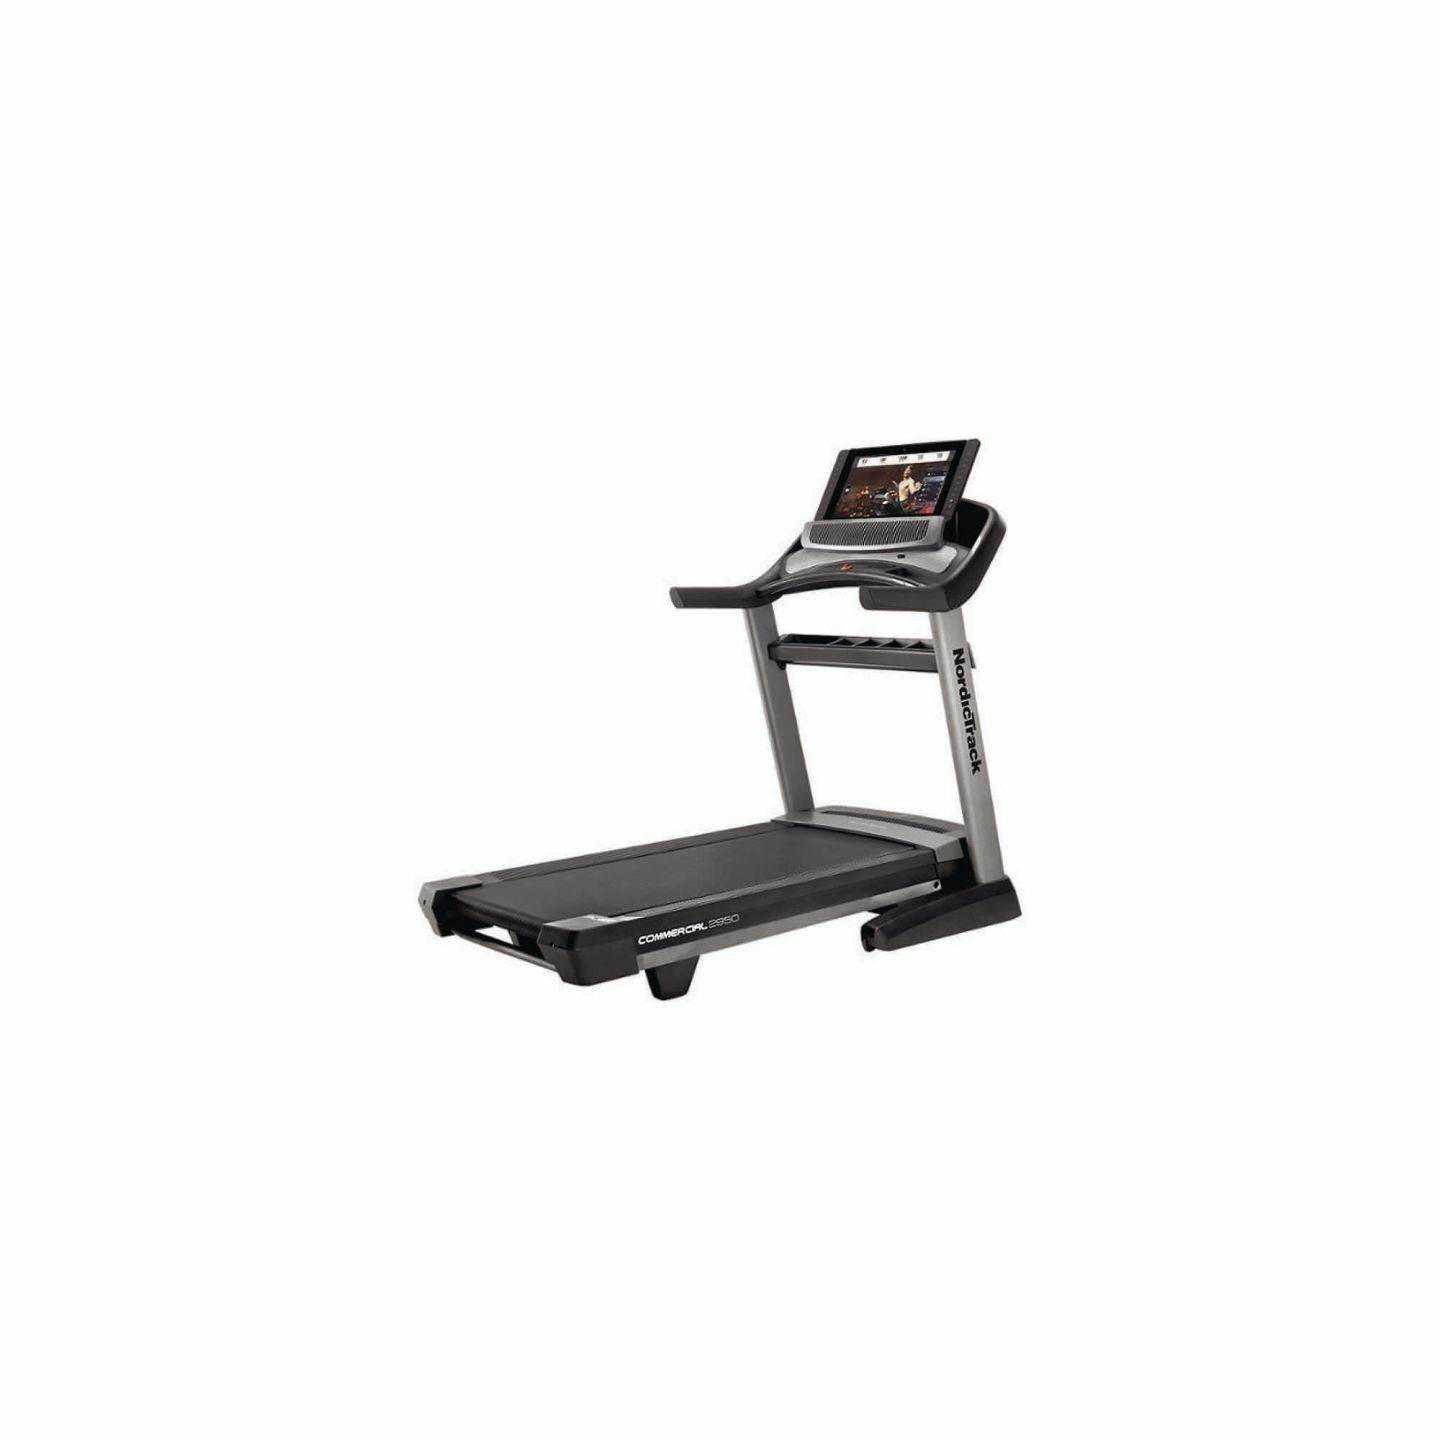 <p>ProForm Pro2000 has a 10-inch smart touchscreen embedded right into the console so you can follow along with trainers as you run while simultaneously tracking your calories, speed and heart rate.(Best Buy/CNET/TNS)</p>